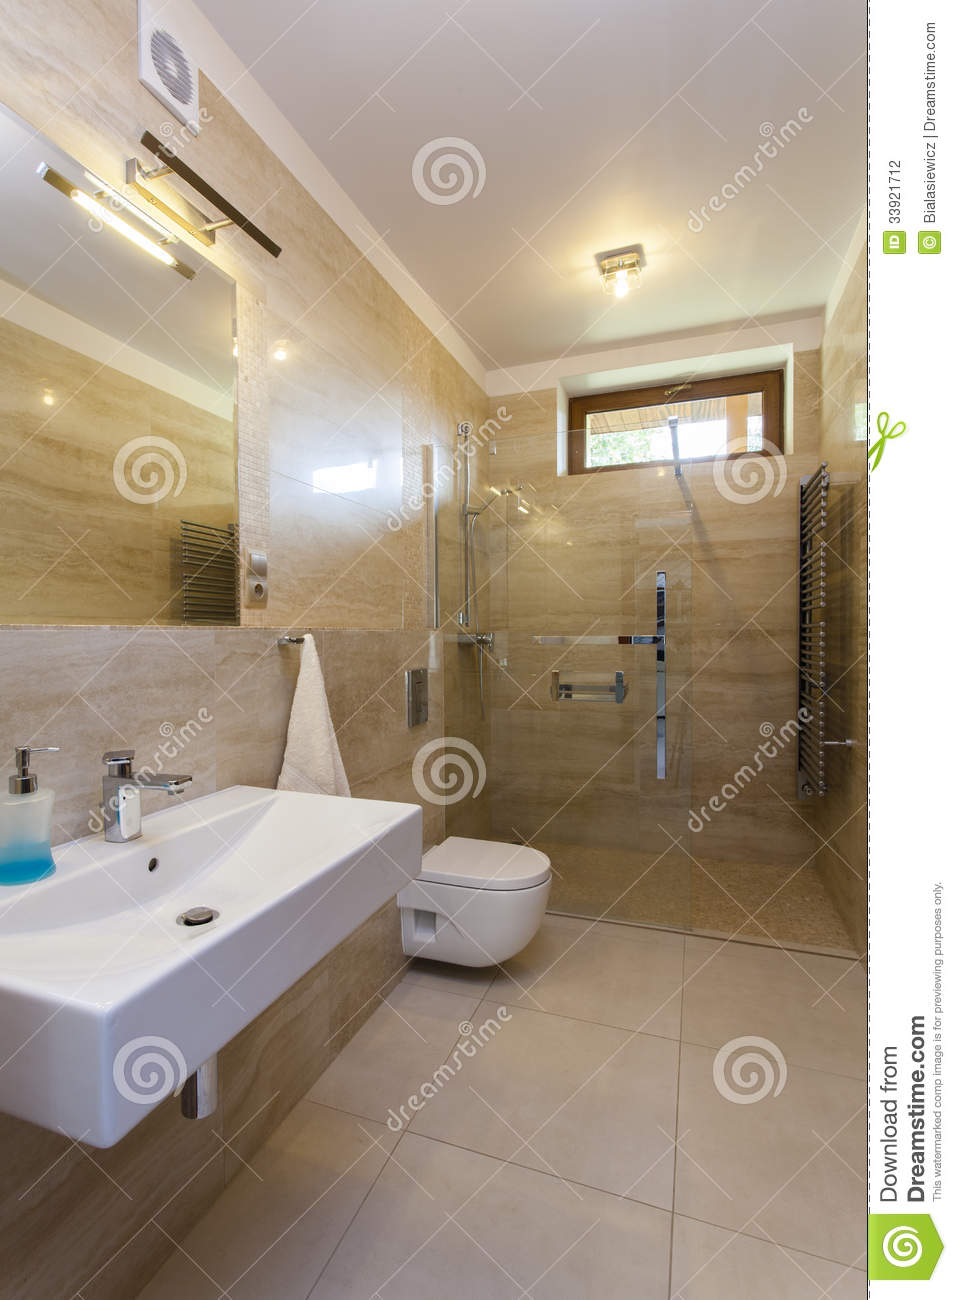 Salle de bains de travertin photo stock image du miroir for Salle de bain en travertin